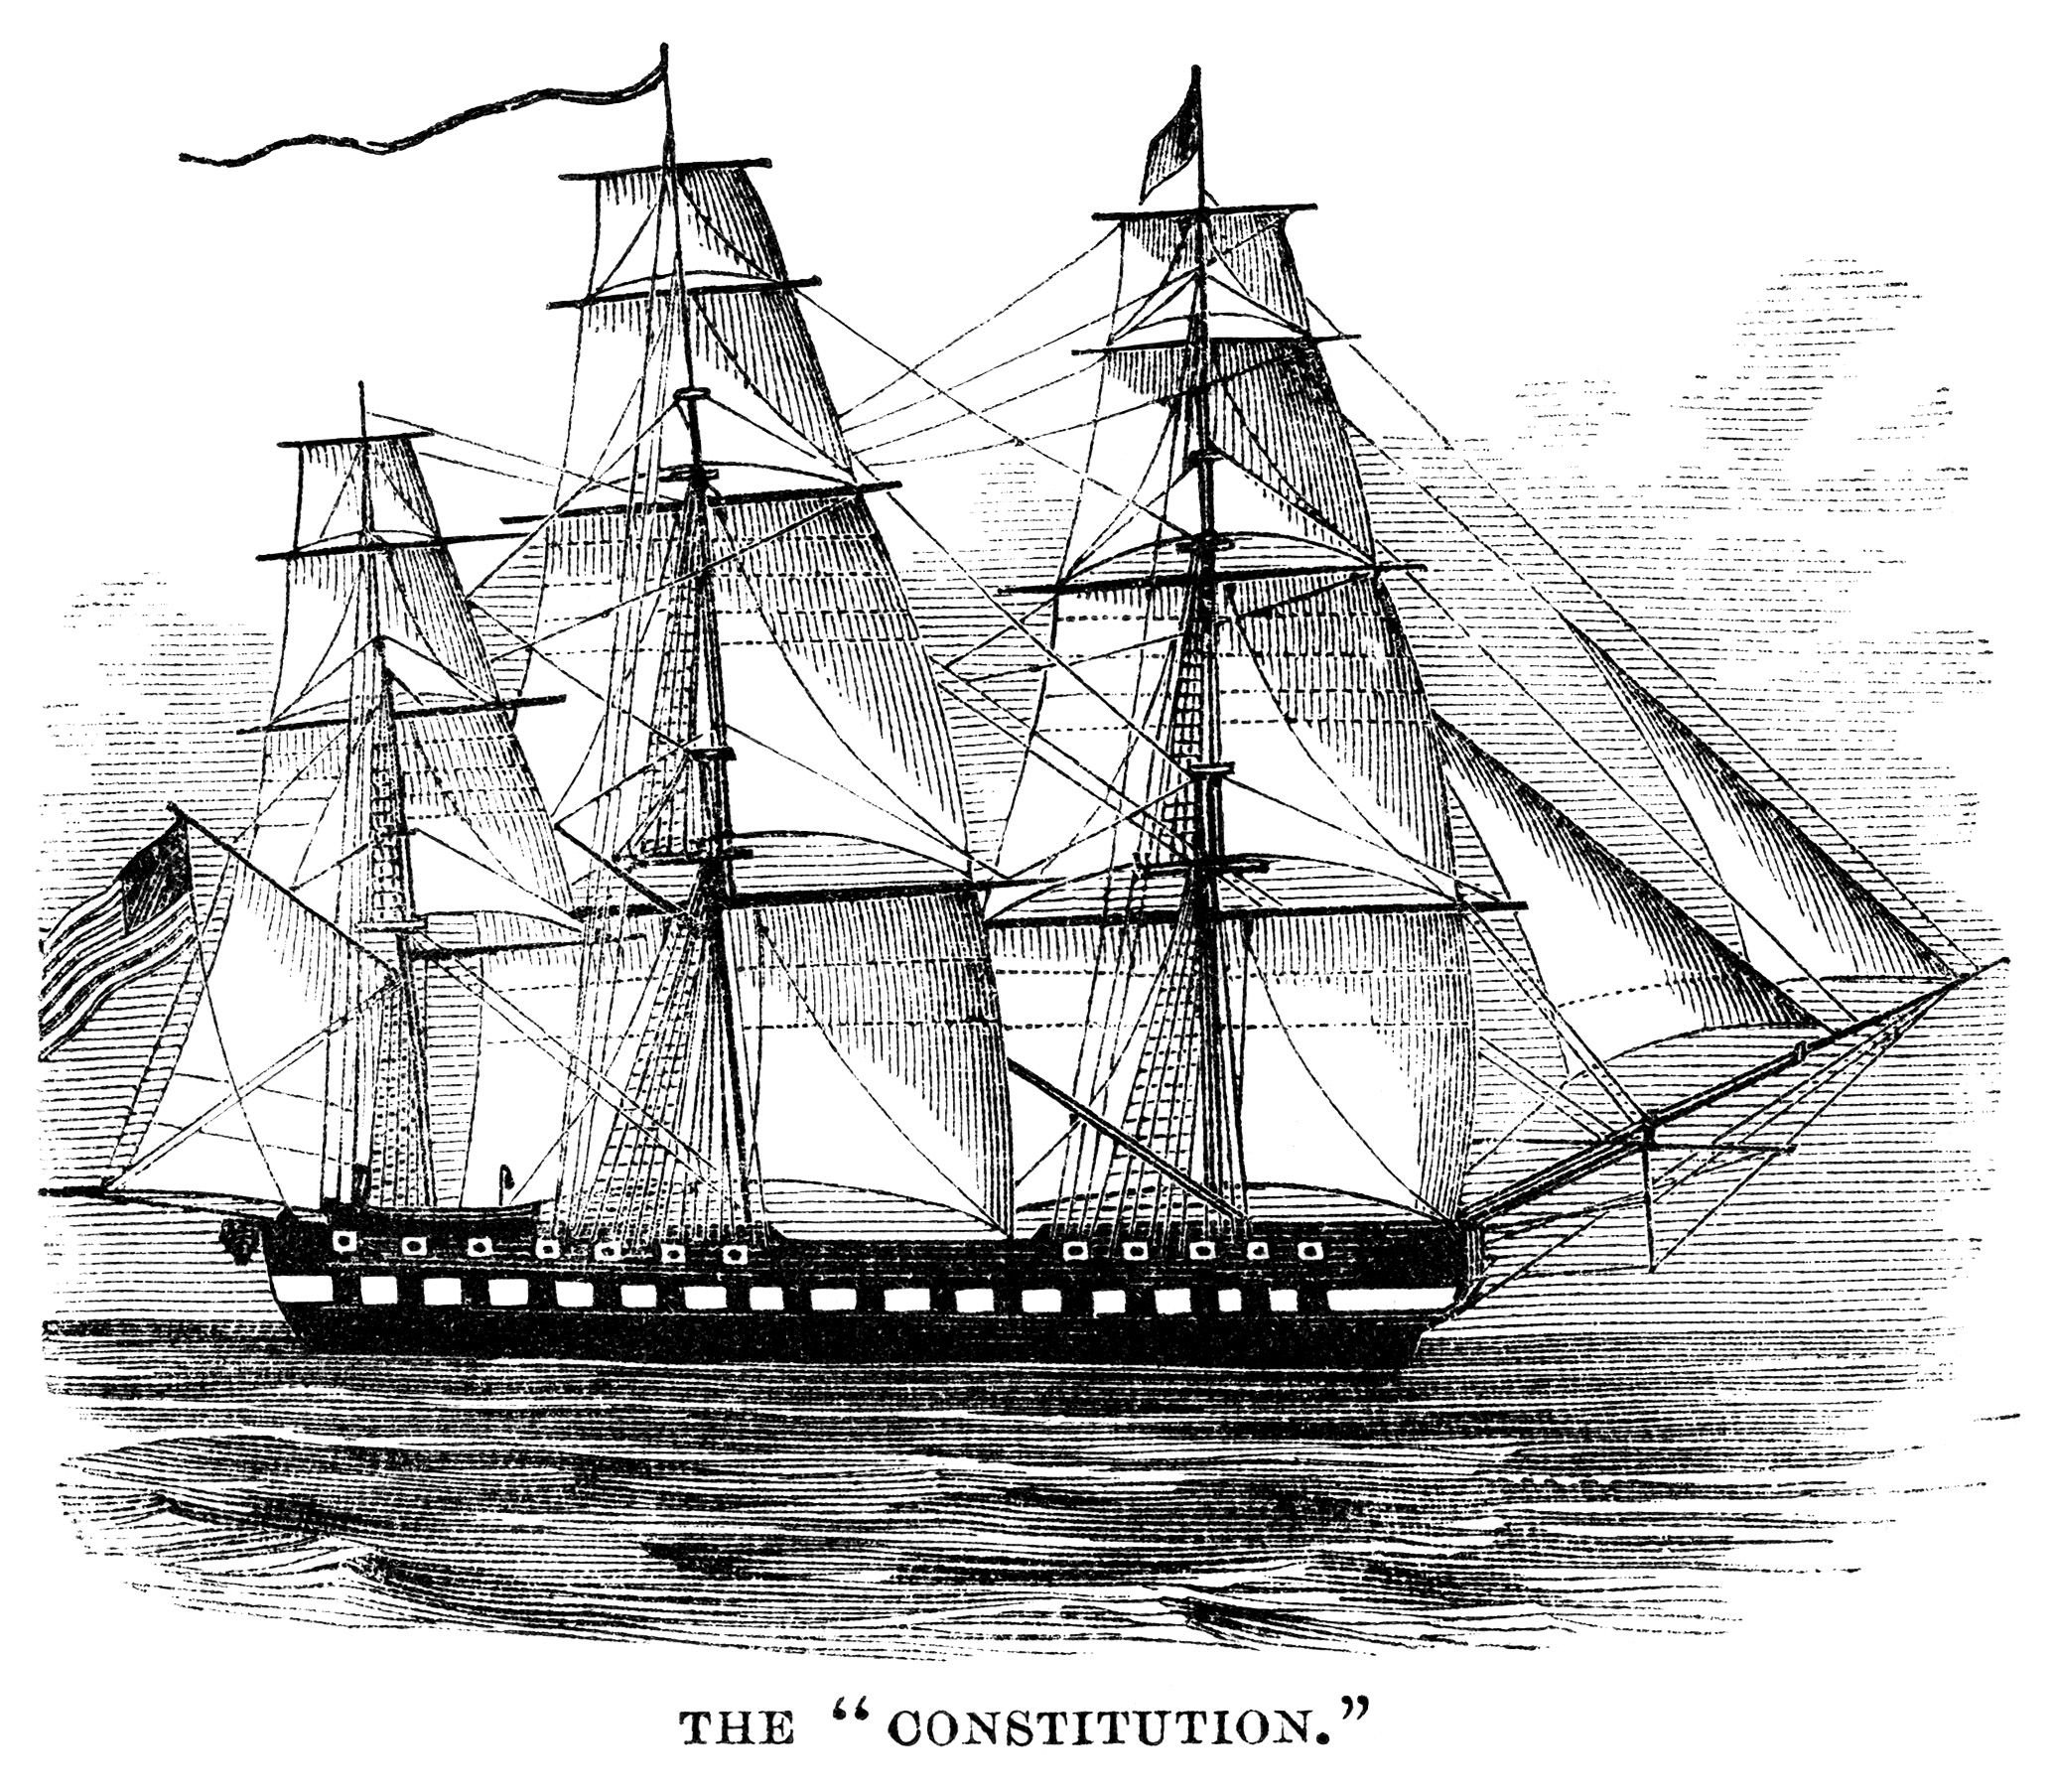 The Constitution Ship